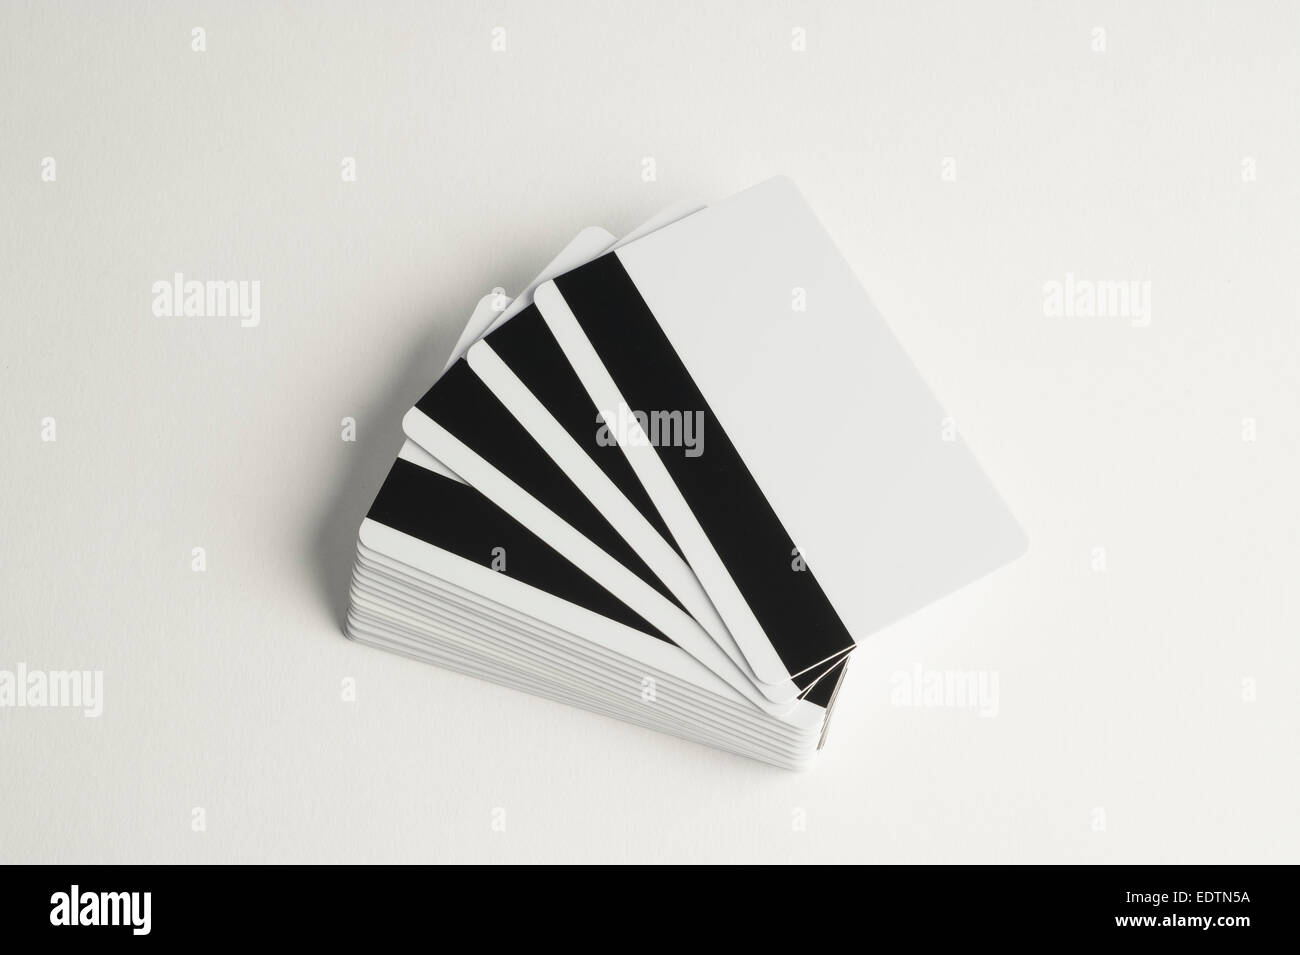 Magnetic Strip Stock Photos Images Alamy Stripe Wiring Diagram Stack Of Blank Credit Cards Showing Image